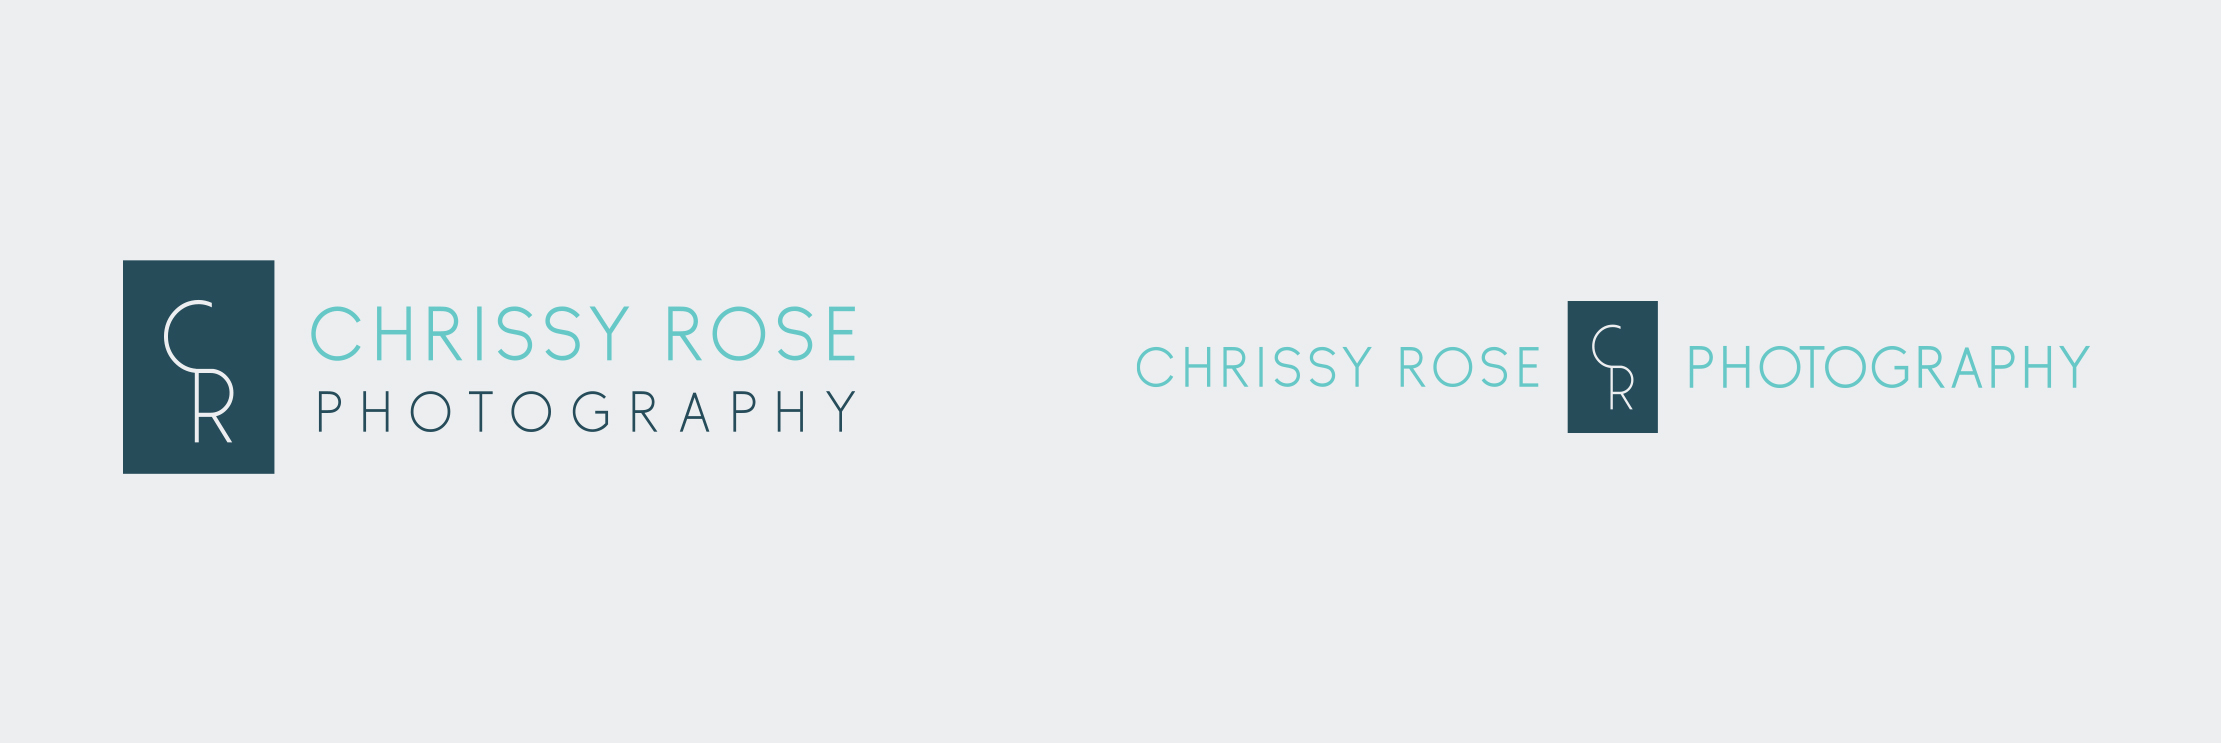 Chrissy Rose Photography Lifestyle